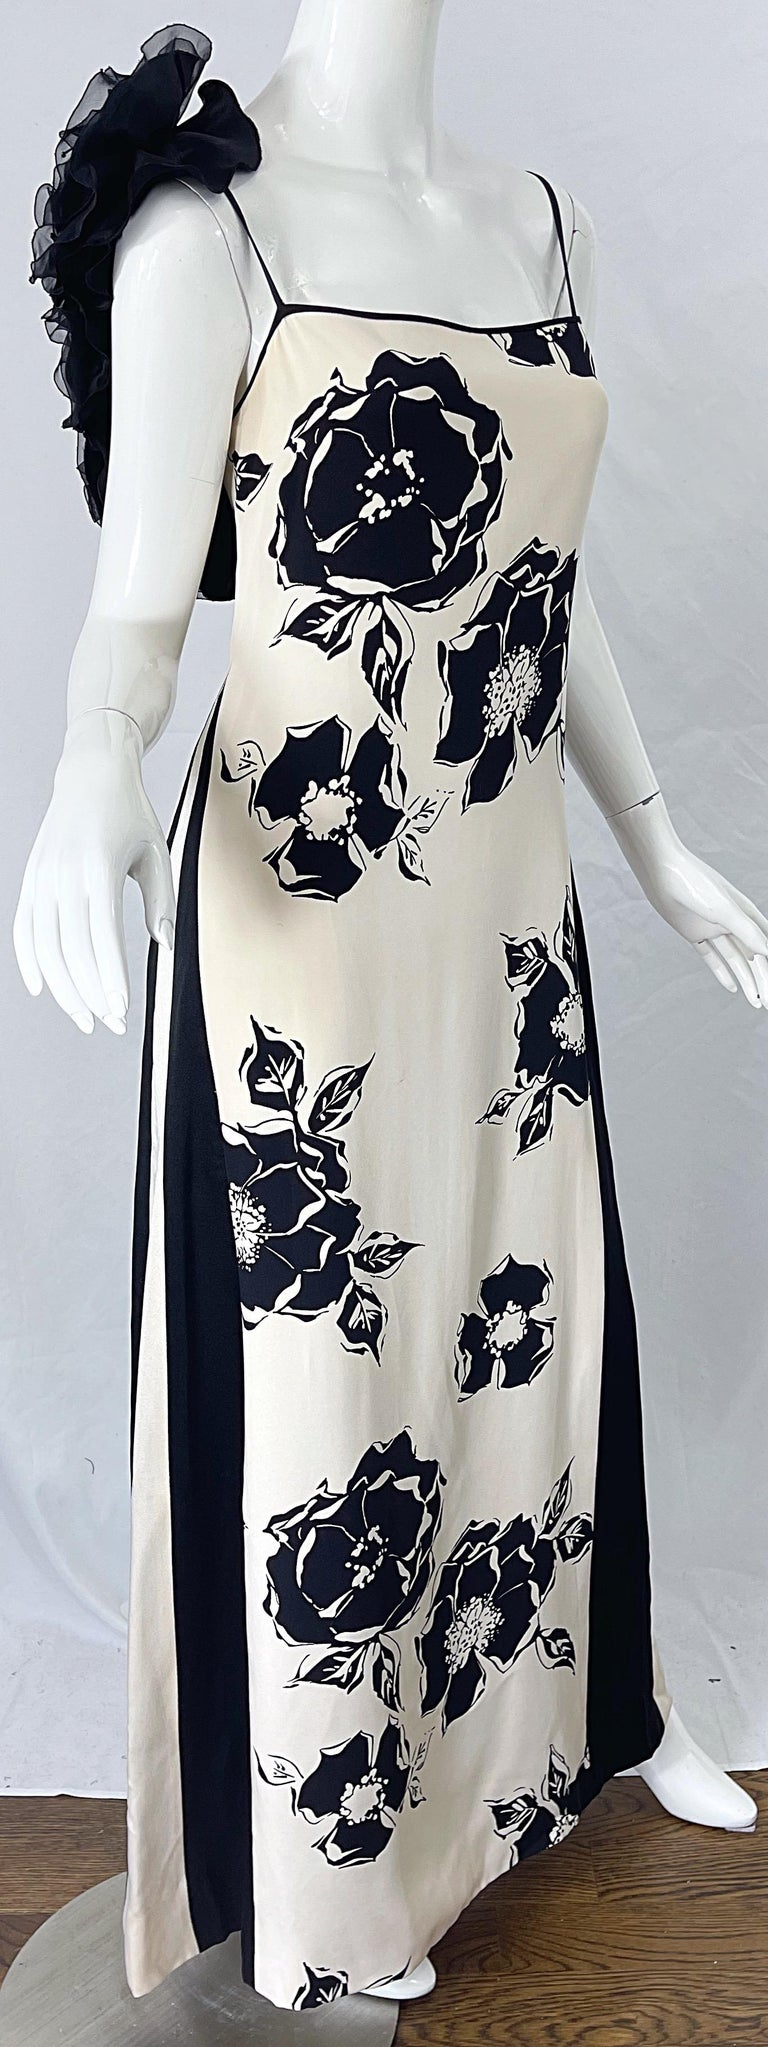 1990s James Galanos Black and White Rosette Sleeve Vintage 90s Silk Gown Dress For Sale 6